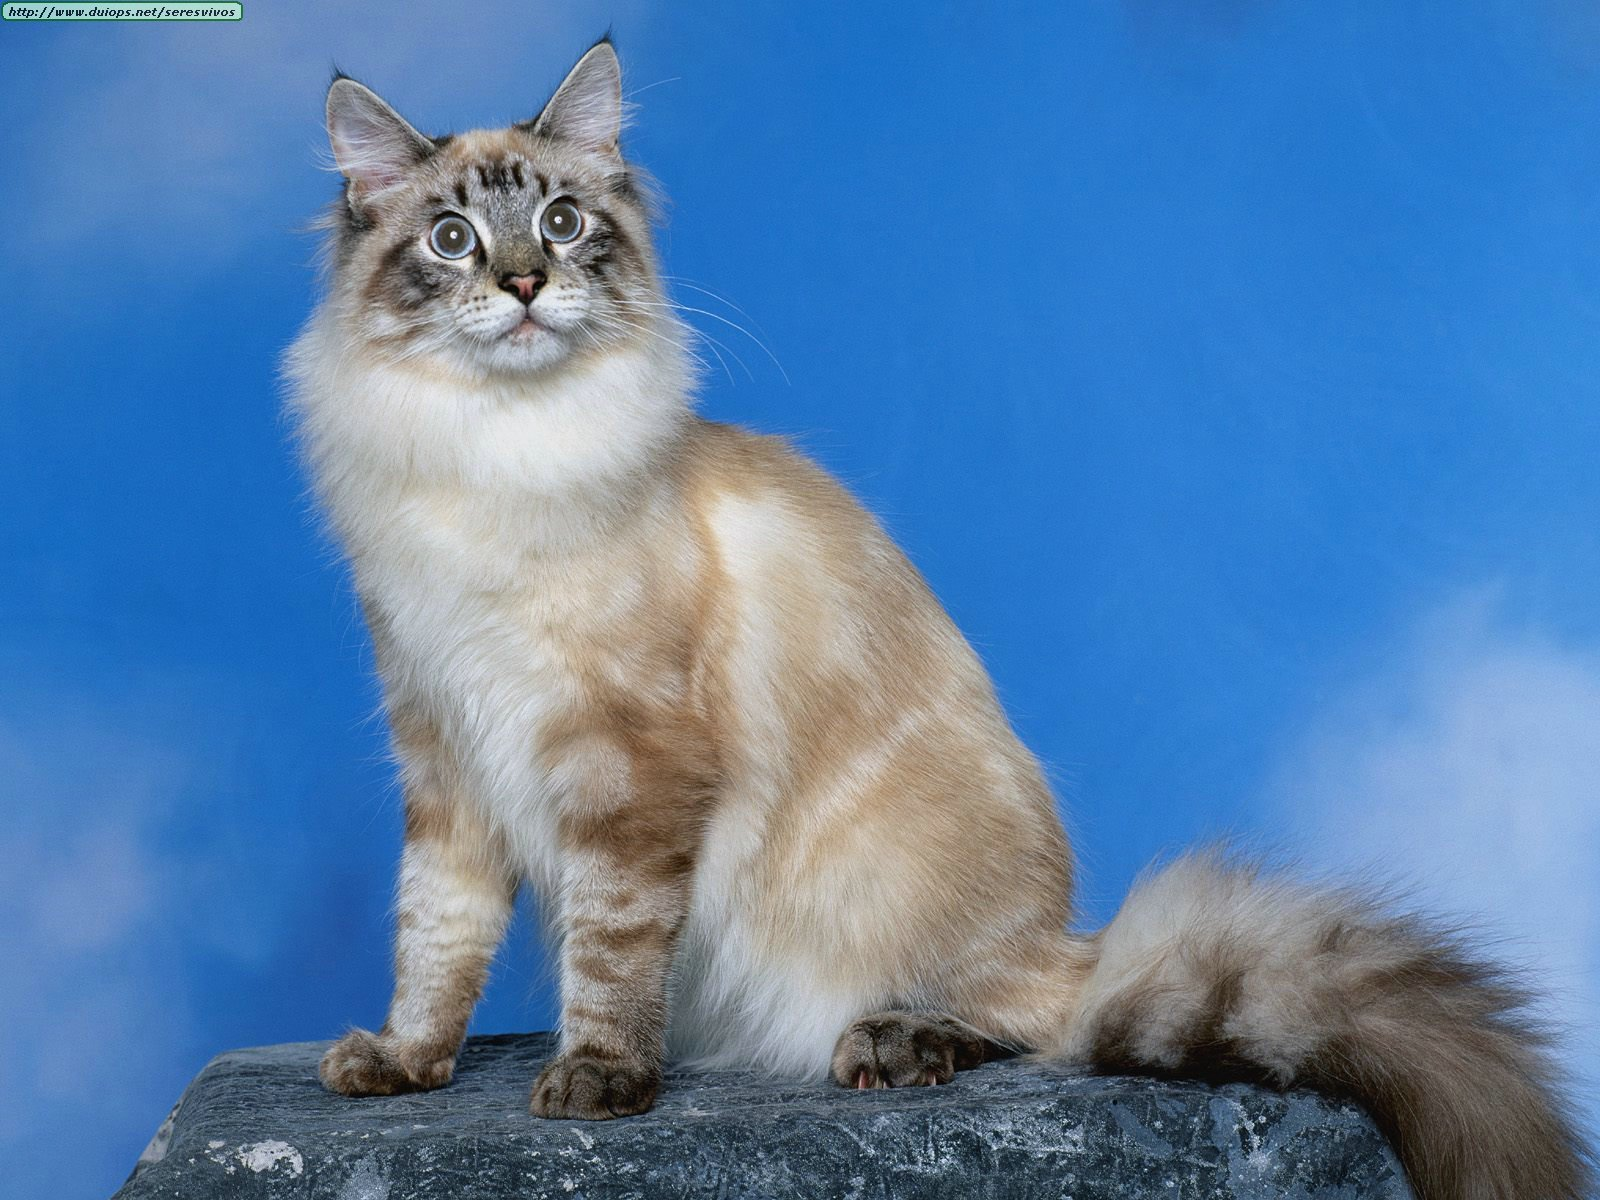 What does a himalayan cat look like